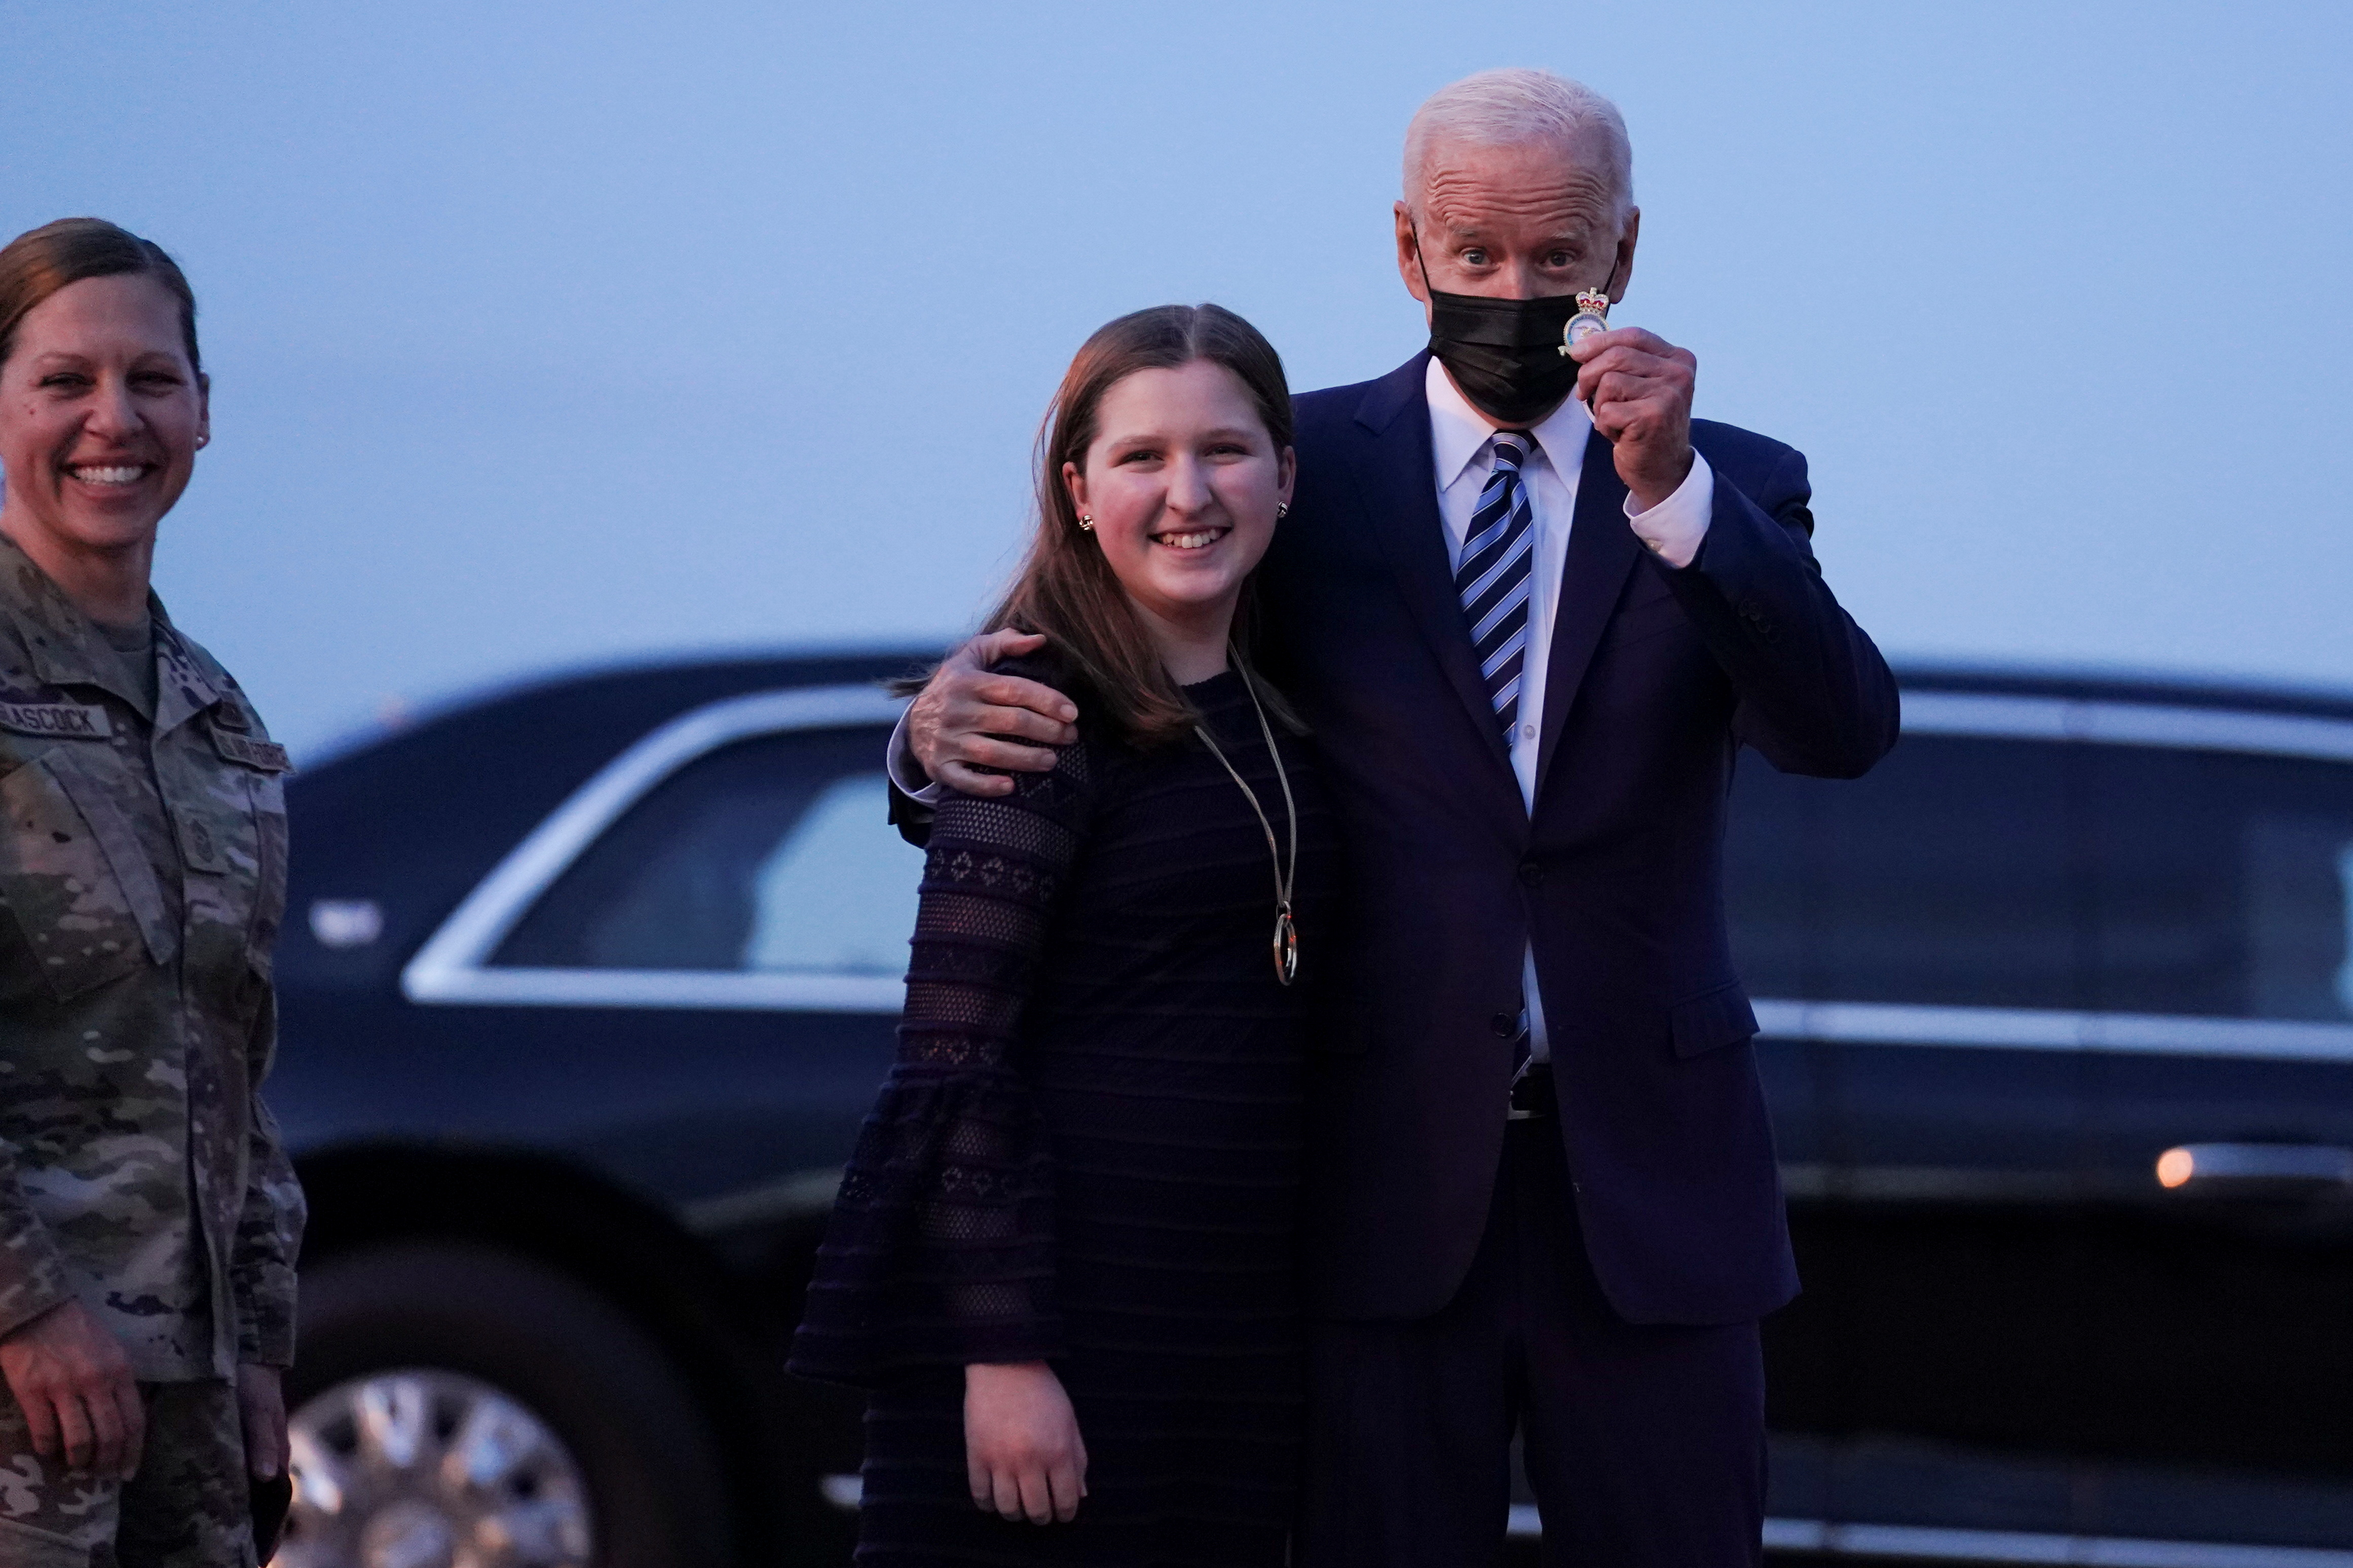 U.S. President Joe Biden holds up a challenge coin as he stands next to Sydney Glascock, Daughter of Command Chief of 100th Air Refueling Wing at RAF Mildenhall, ahead of the G7 Summit, near Mildenhall, Britain June 9, 2021. REUTERS/Kevin Lamarque